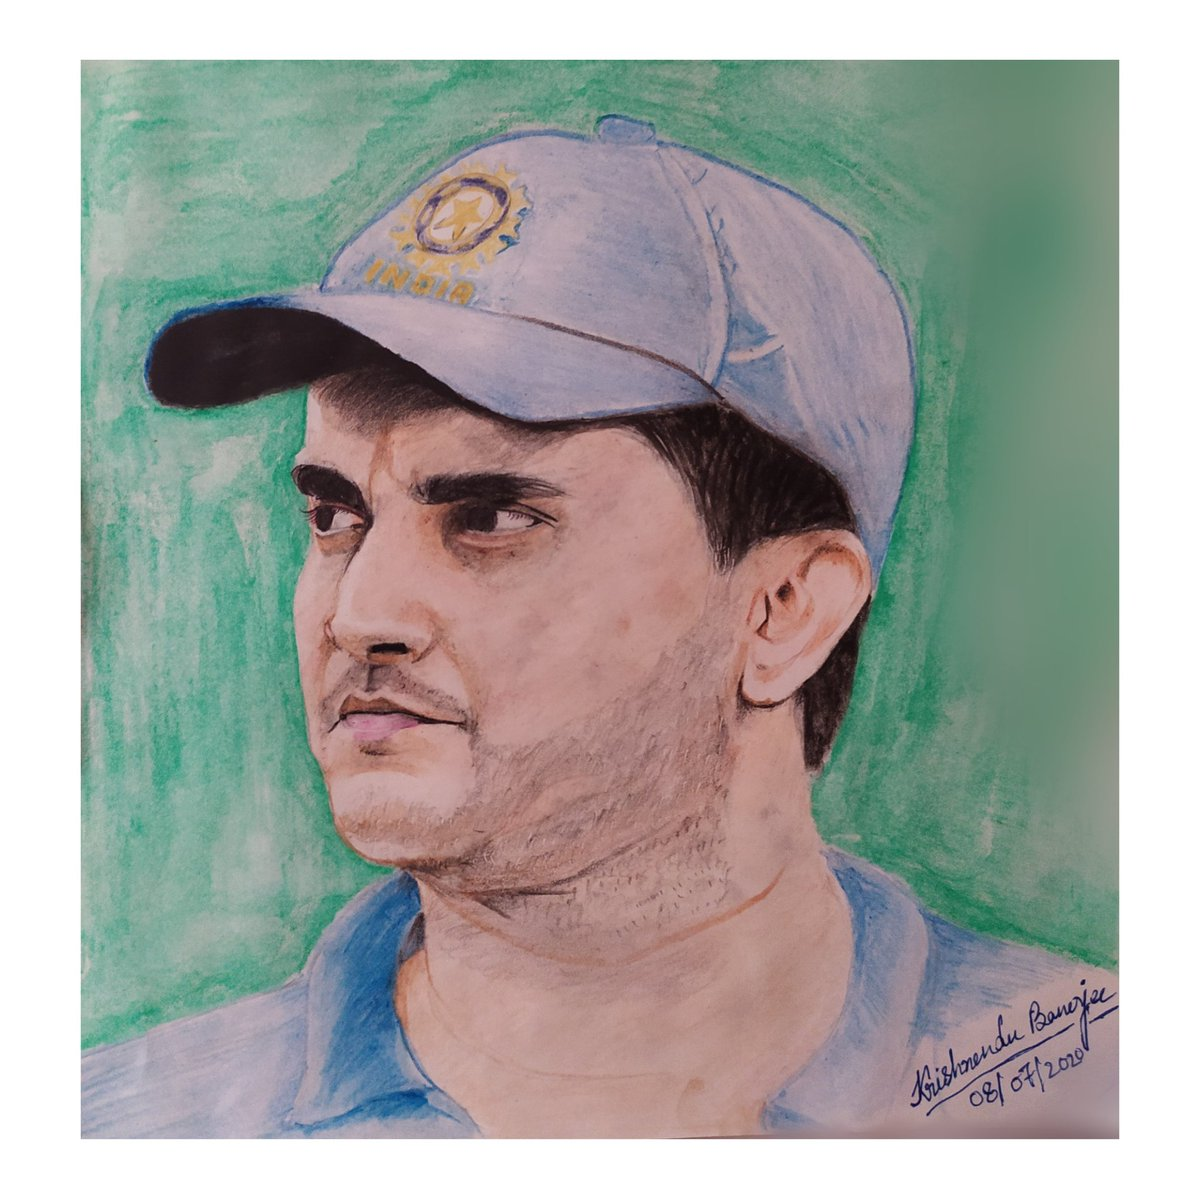 One Man who taught aggression to the Indian cricket and showed the real Dadagiri to the World. Very Happy 48th Birthday Dada, our beloved @SGanguly99    শুভ জন্মদিন মহারাজ#HappyBirthdayDada #dada #SouravGanguly  #cricket #artsofrantu #sketch #pencilsketch pic.twitter.com/z3Ts3kWKVk